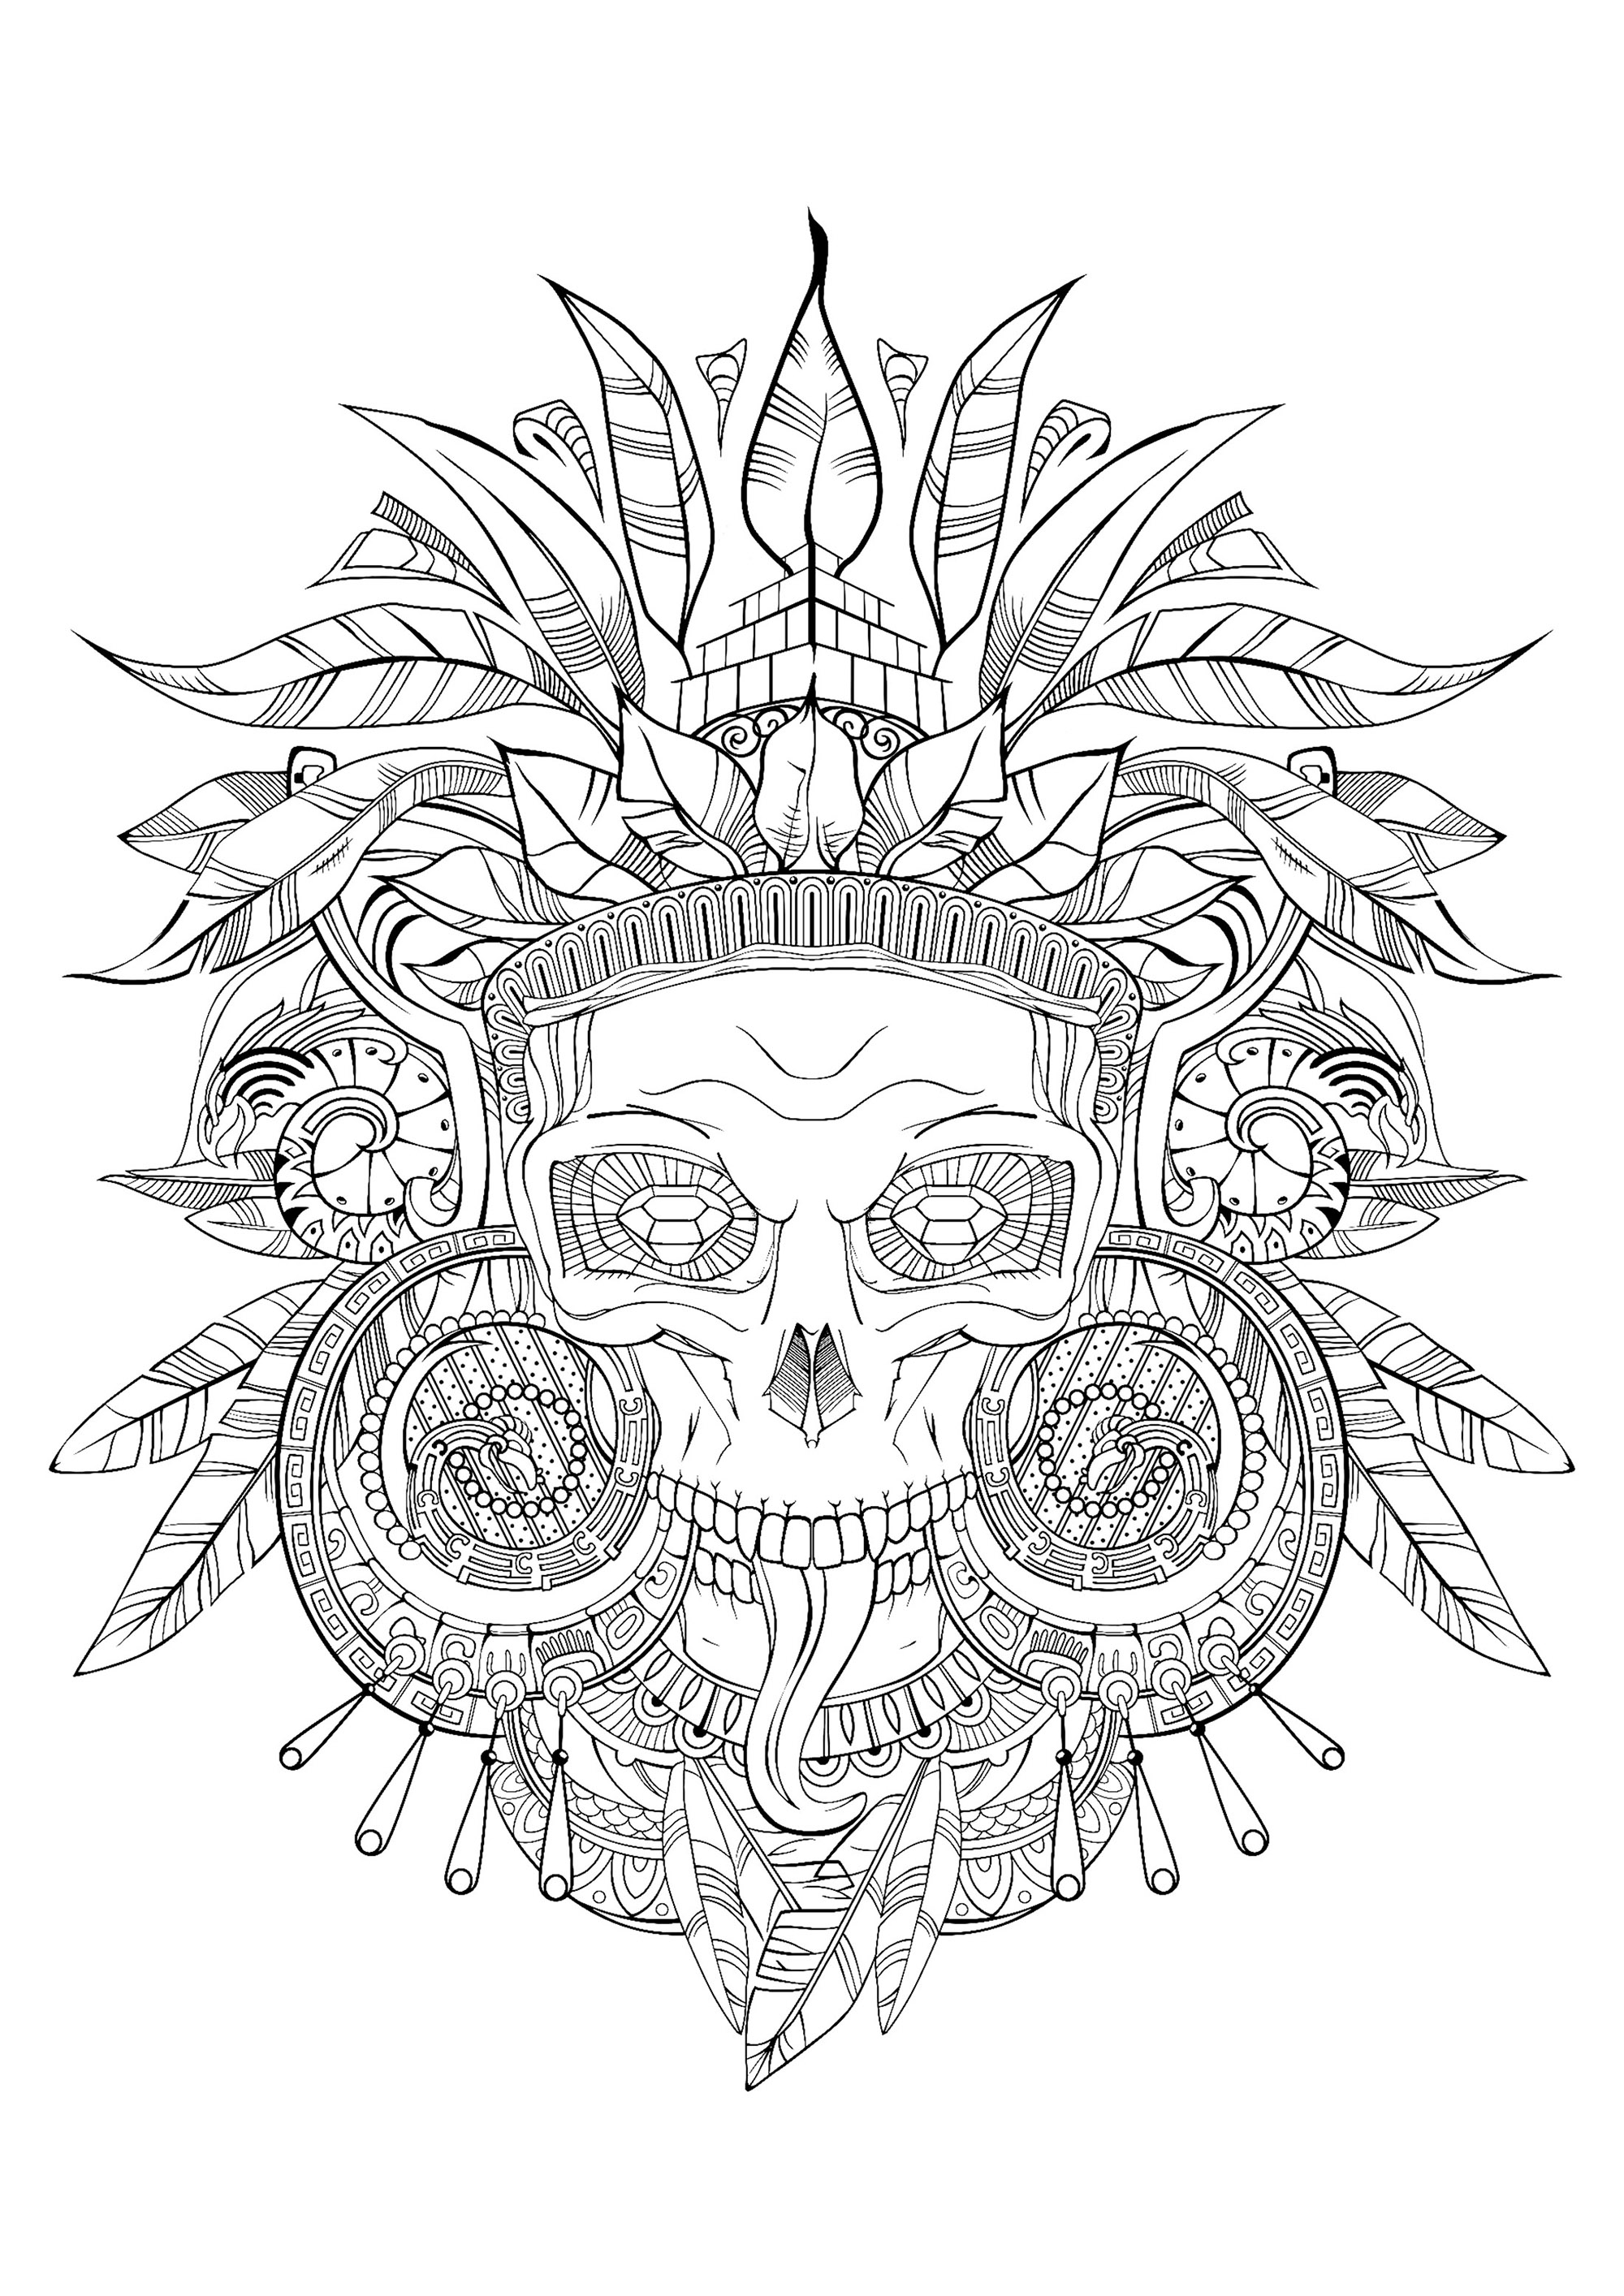 black and white coloring pages for adults pin on abstract zentangles paisley etc to color black coloring adults and pages for white